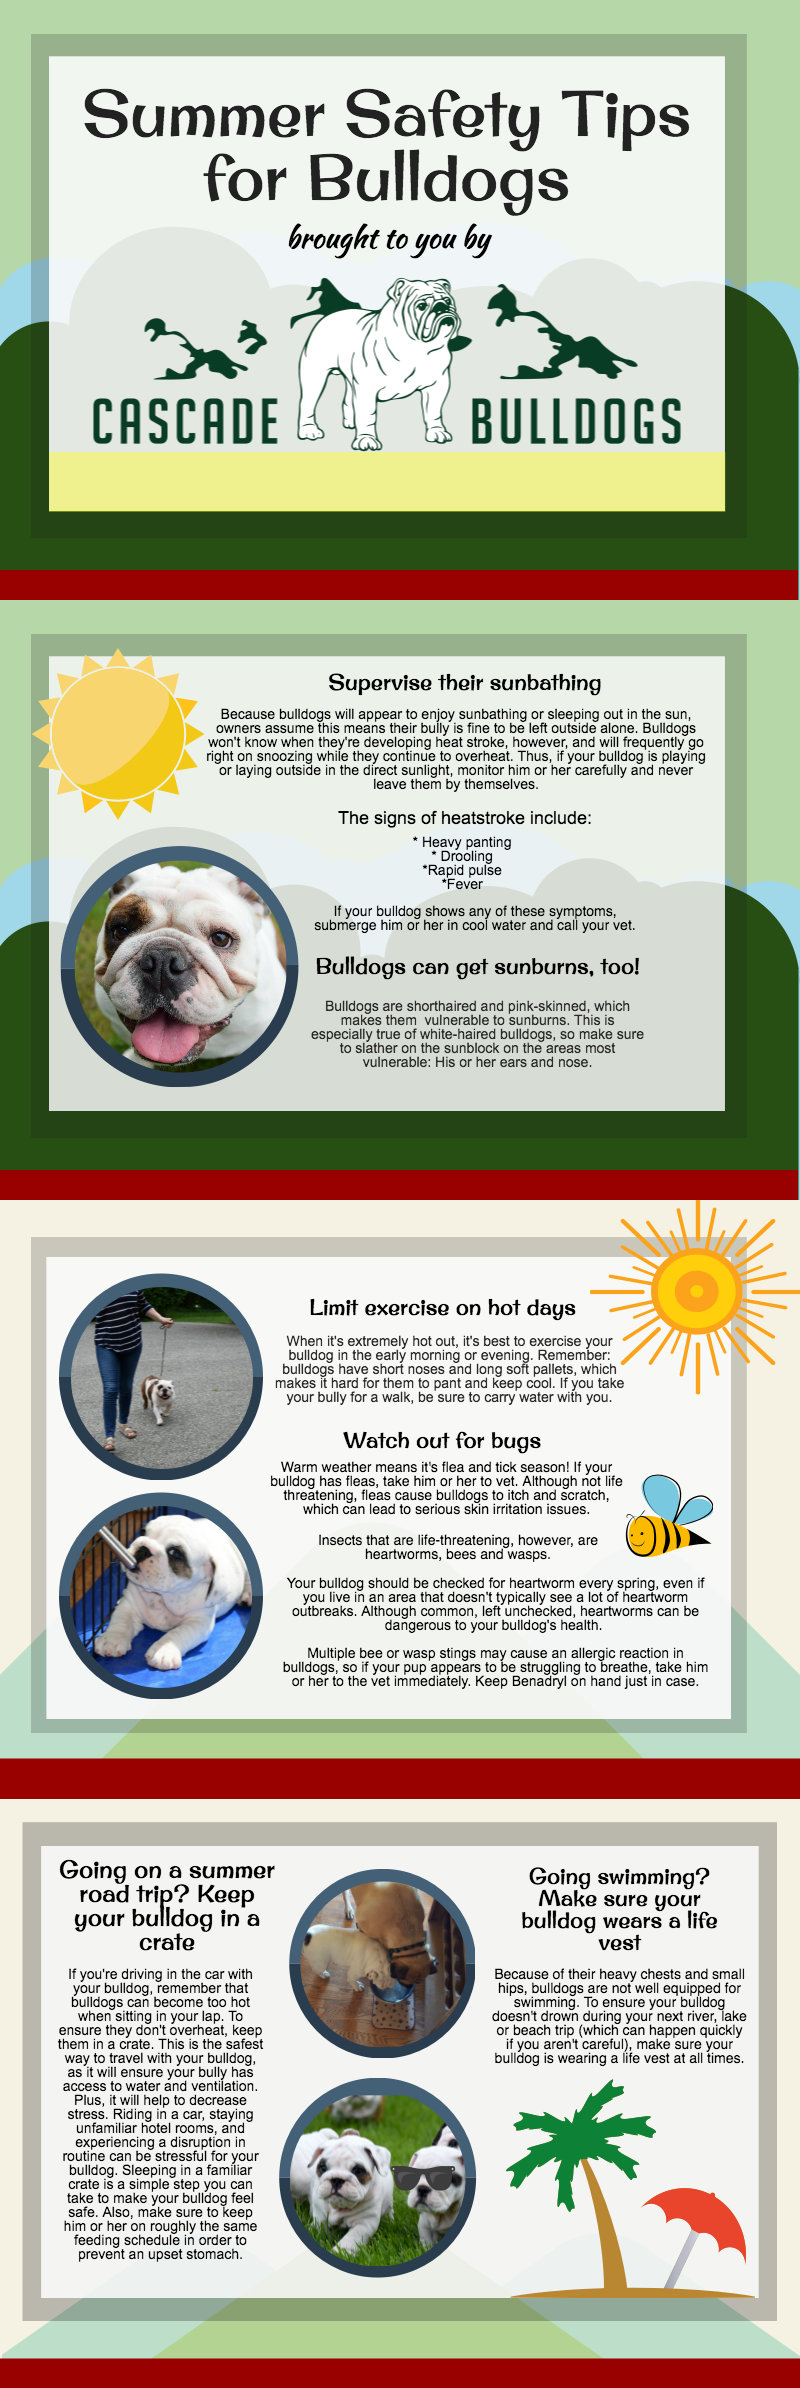 Tips for caring for your bulldog in the summer